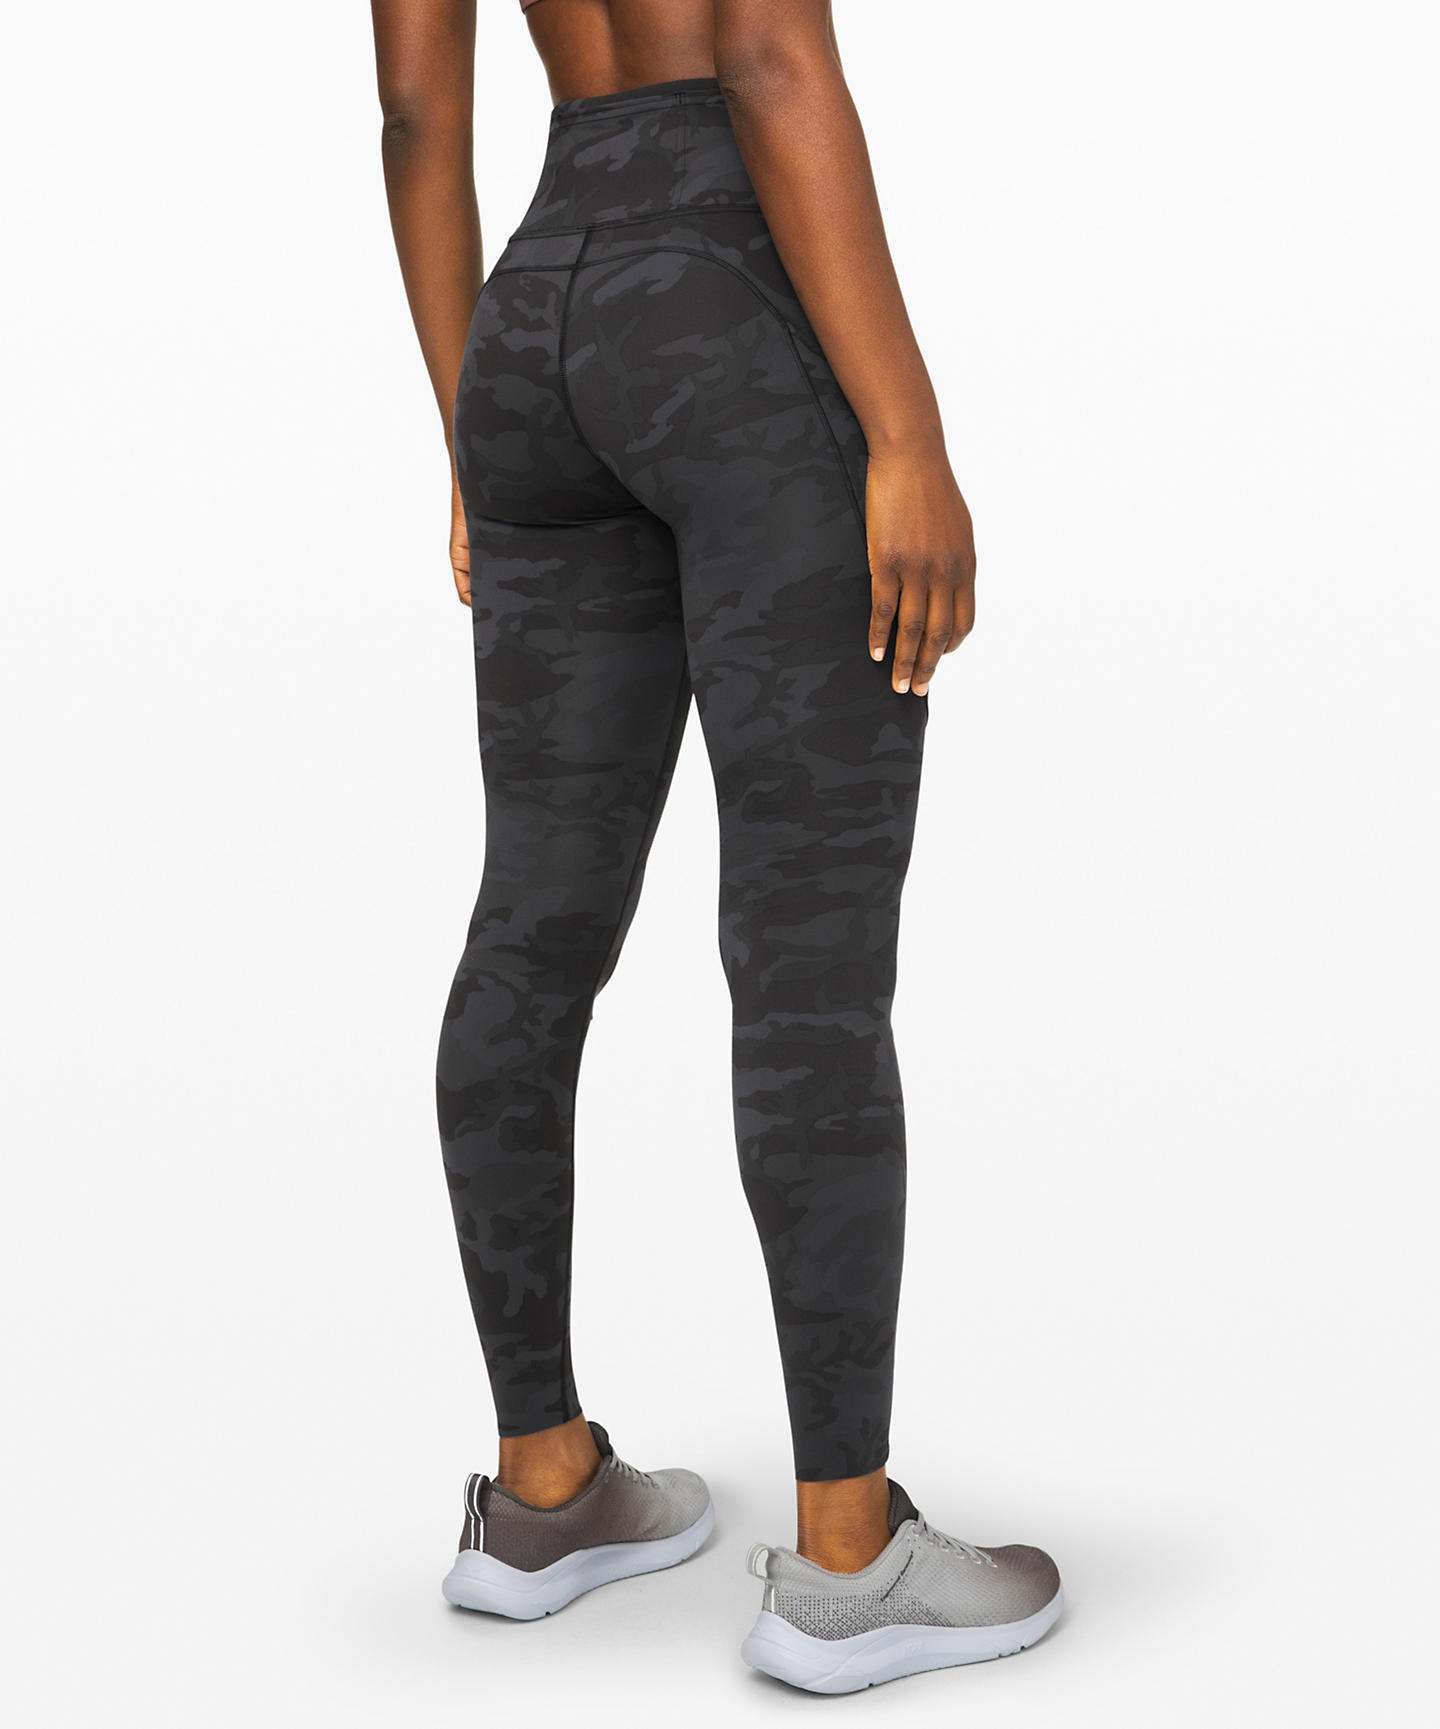 Lululemon fast and free Nulux legging review